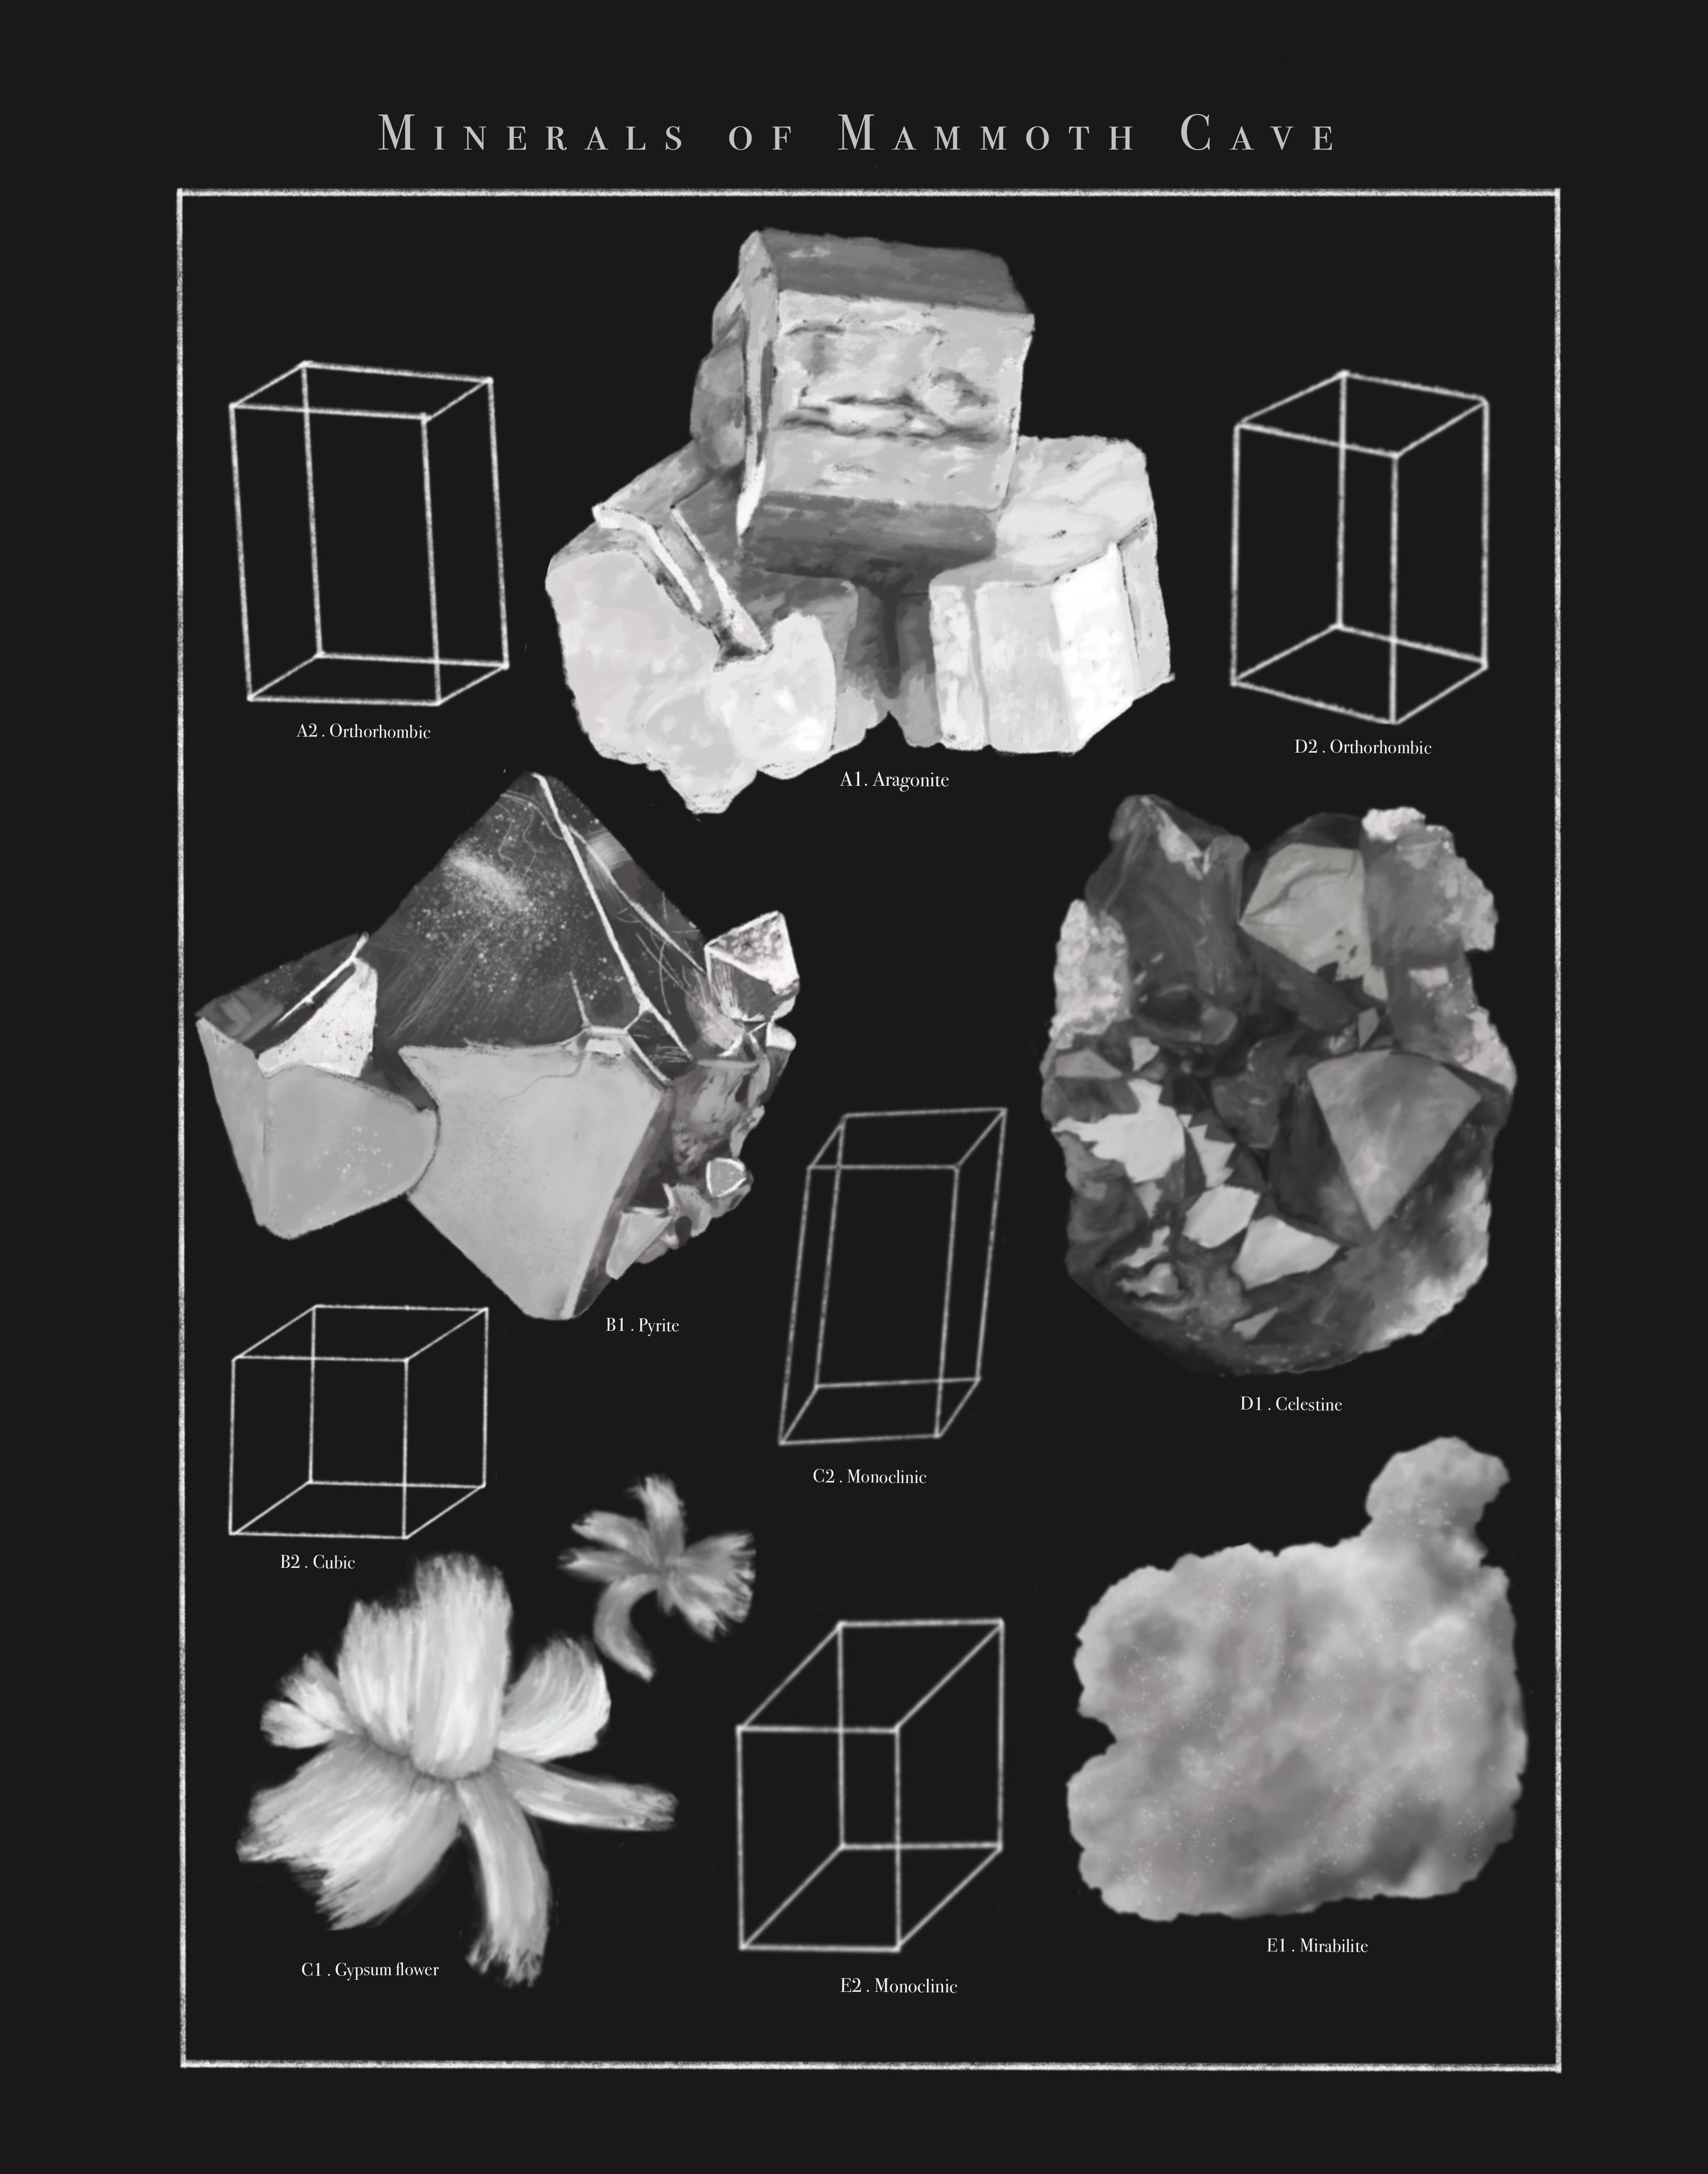 This work depicts a scientific collection of some minerals found in Mammoth Cave. Accompanying each realistic illustration is the respective crystal system, or a category classified by possible relations of the crystal axes. The following minerals are featured: Aragonite (orthorhombic), Pyrite (cubic), Gypsum flower (monoclinic), Celestine (orthorhombic), and Mirabilite (monoclinic).